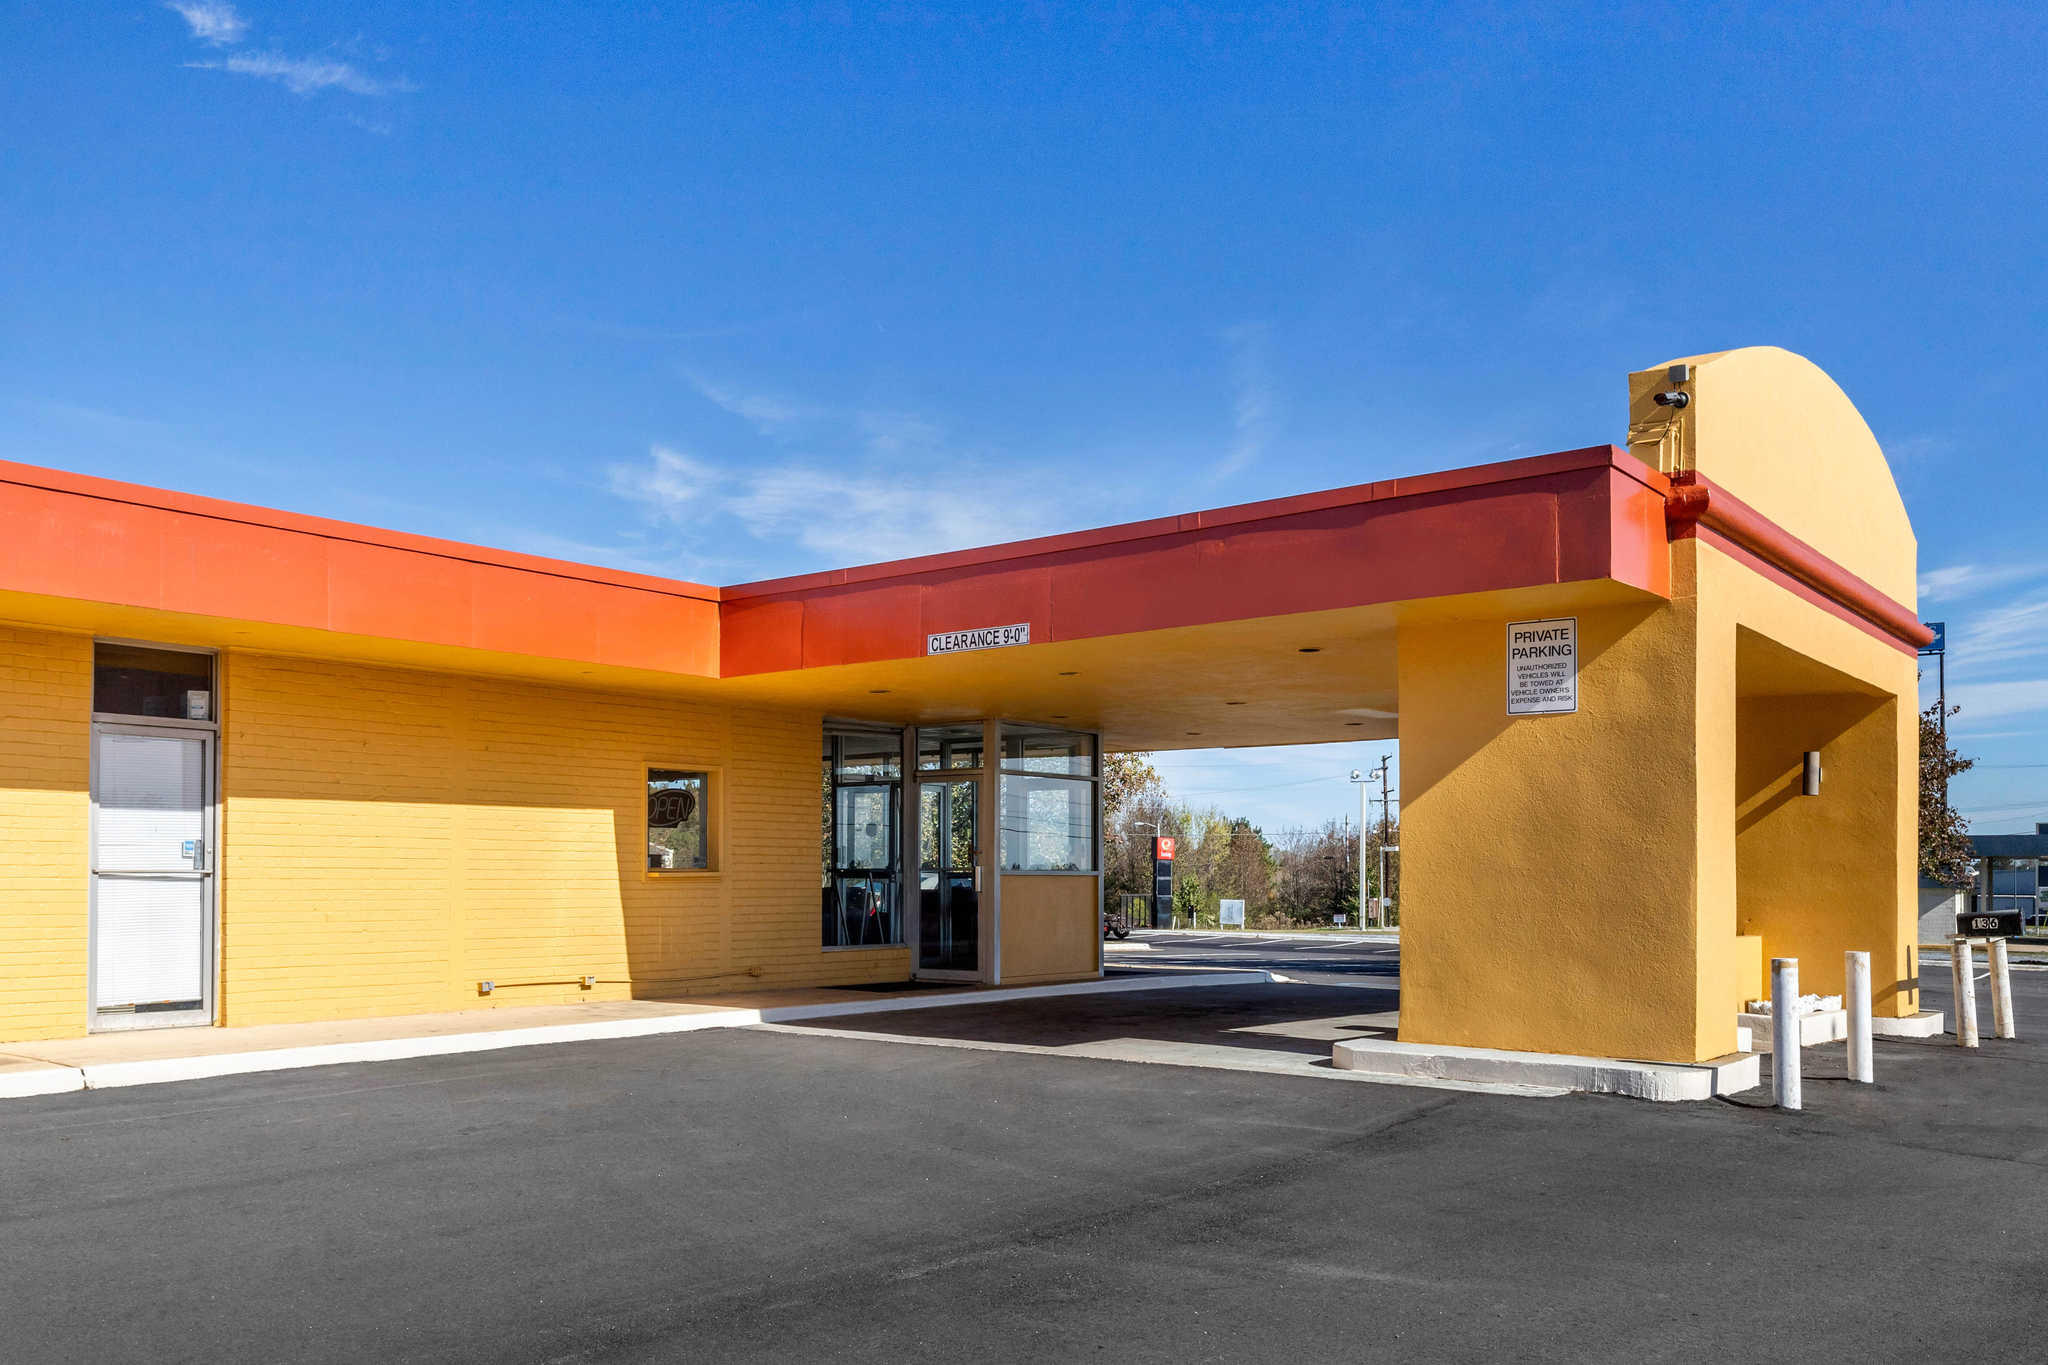 Econo Lodge image 1